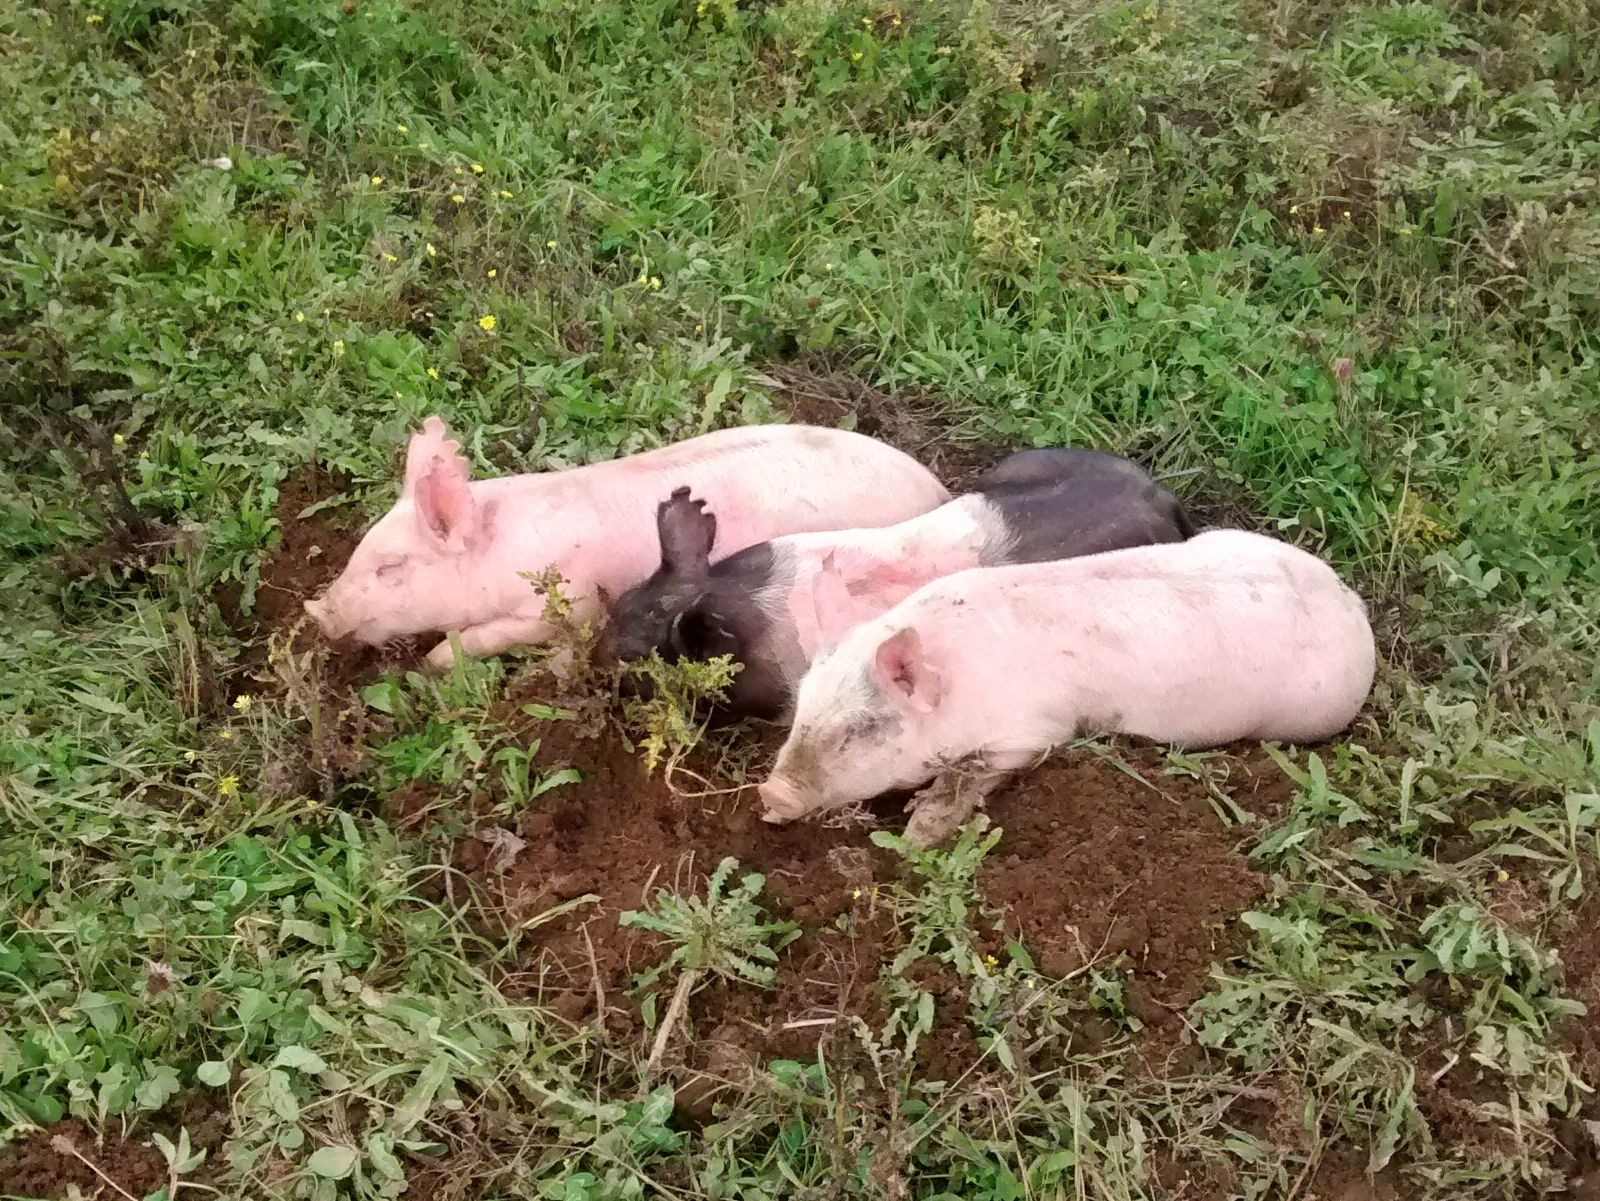 Three little pigs from 2015